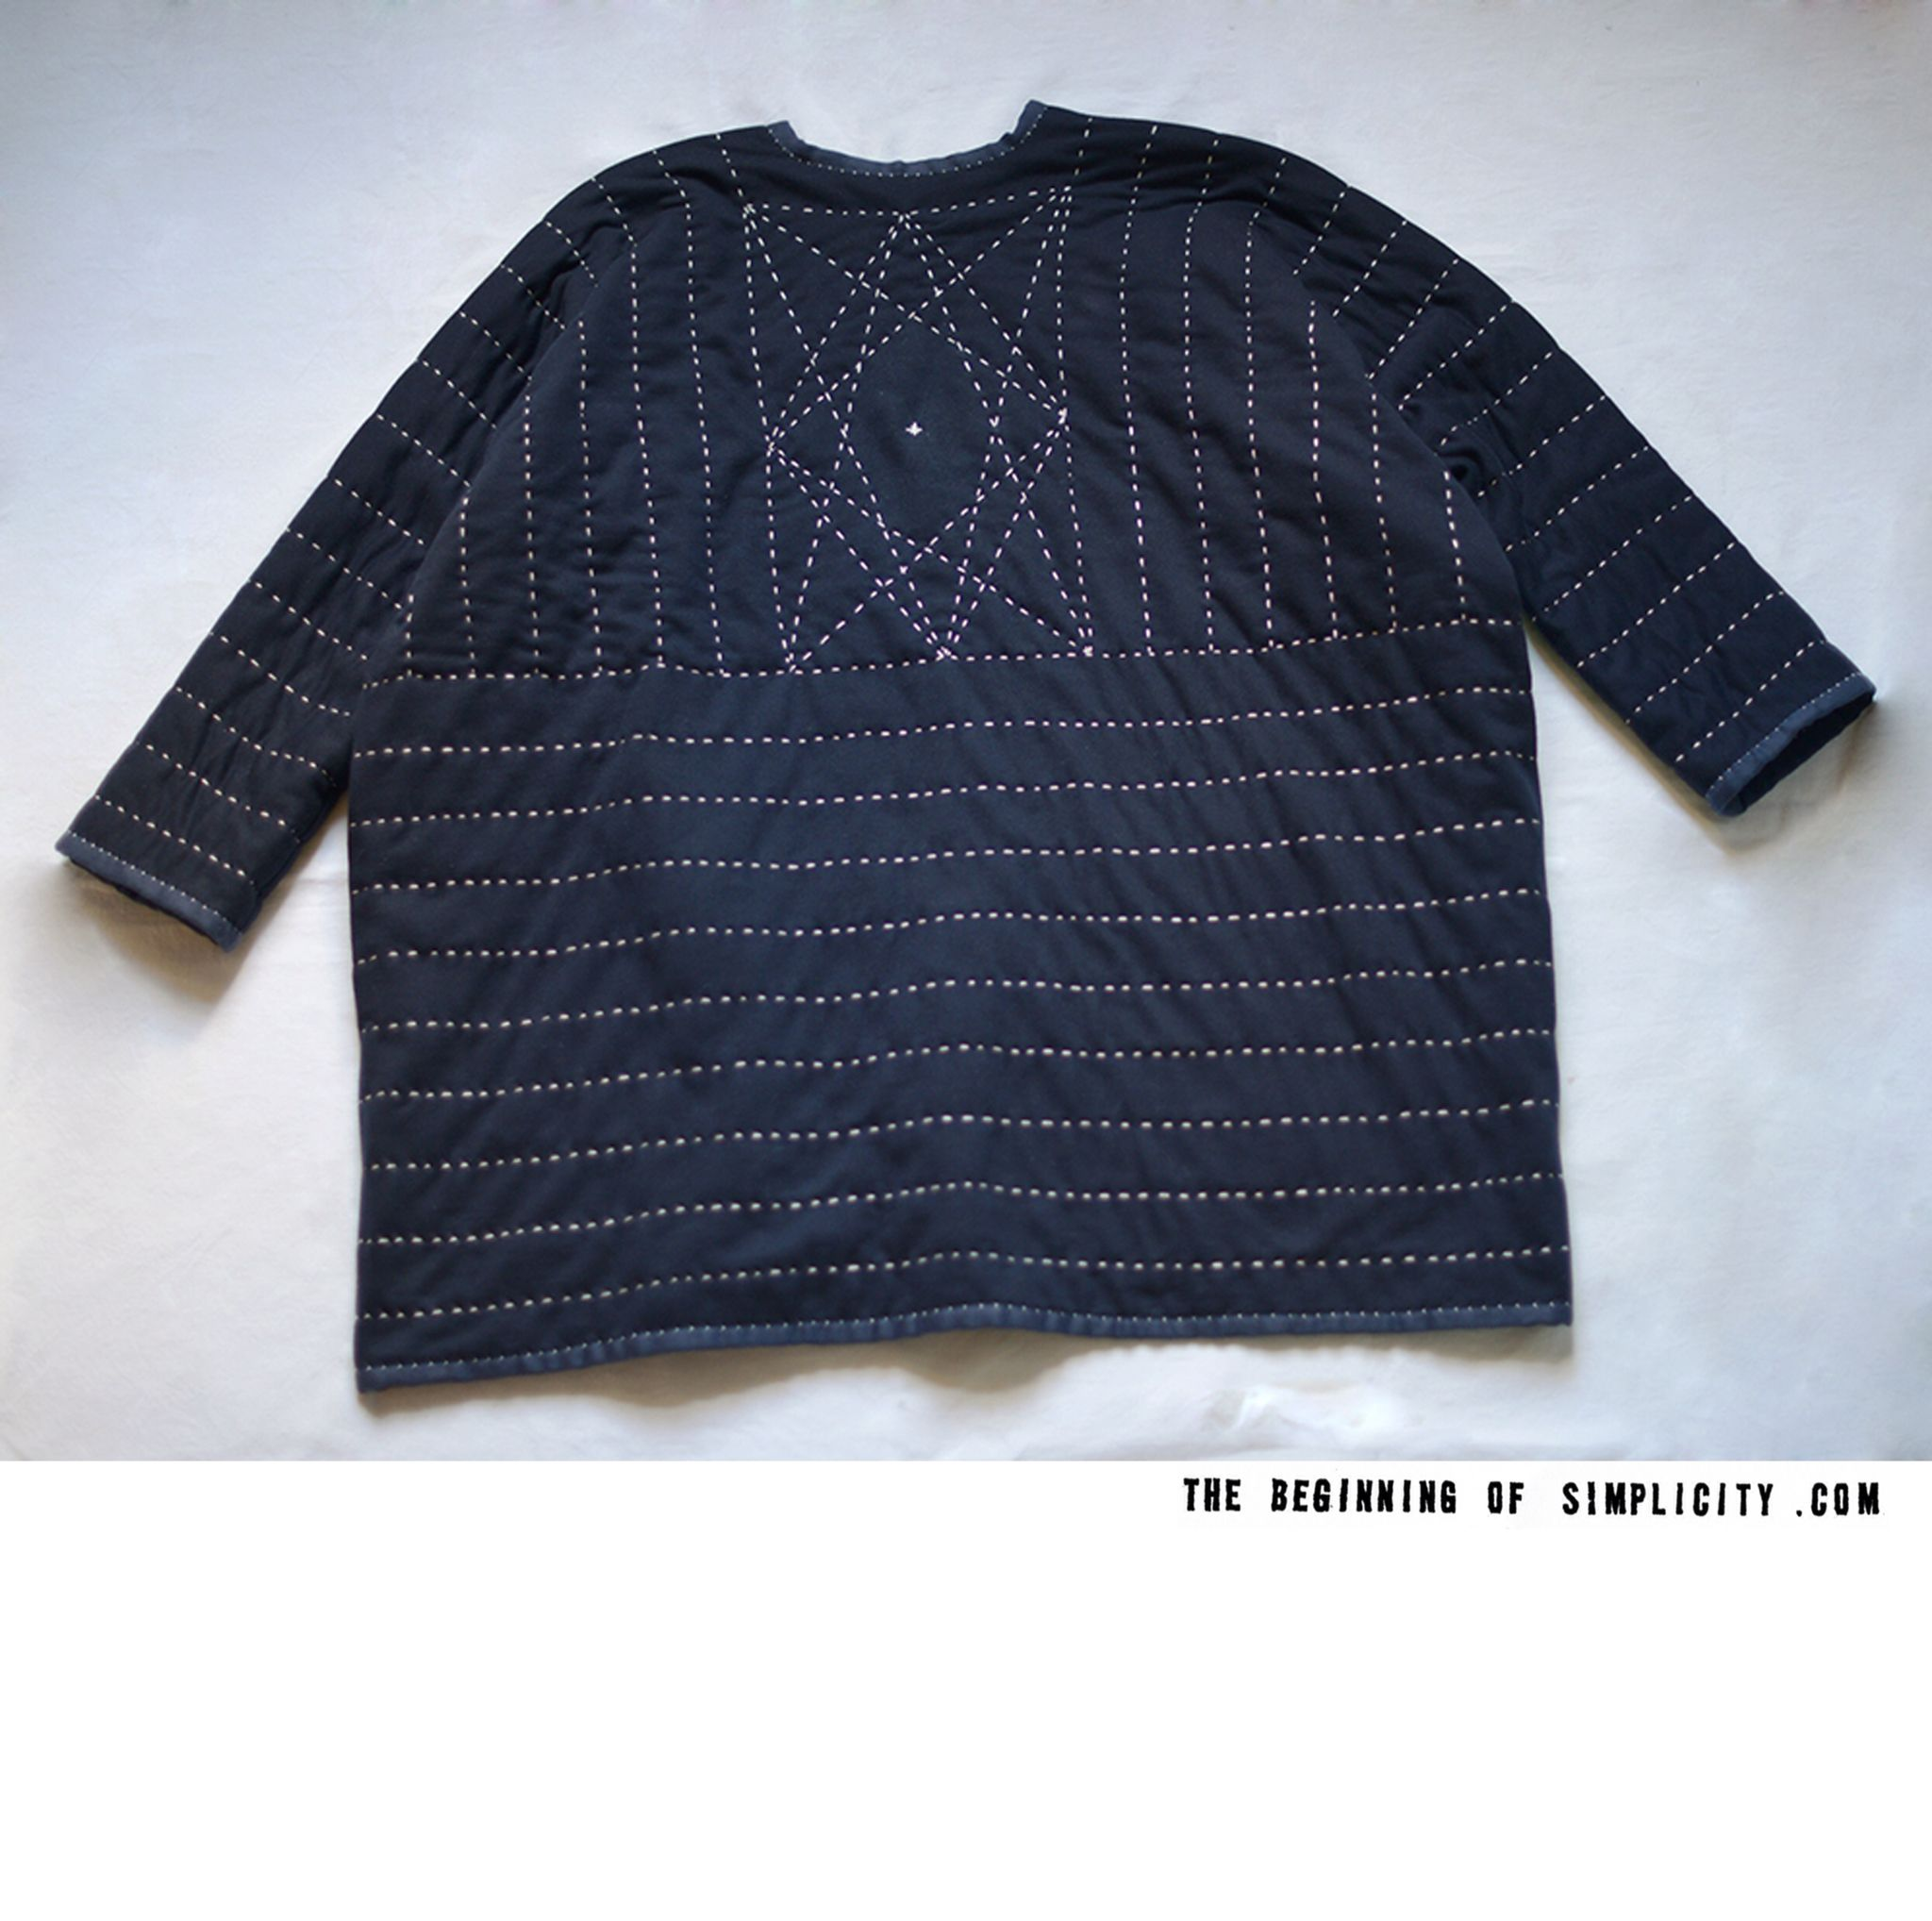 Made to order all handstitched SASHIKO Diamond coat is available now online